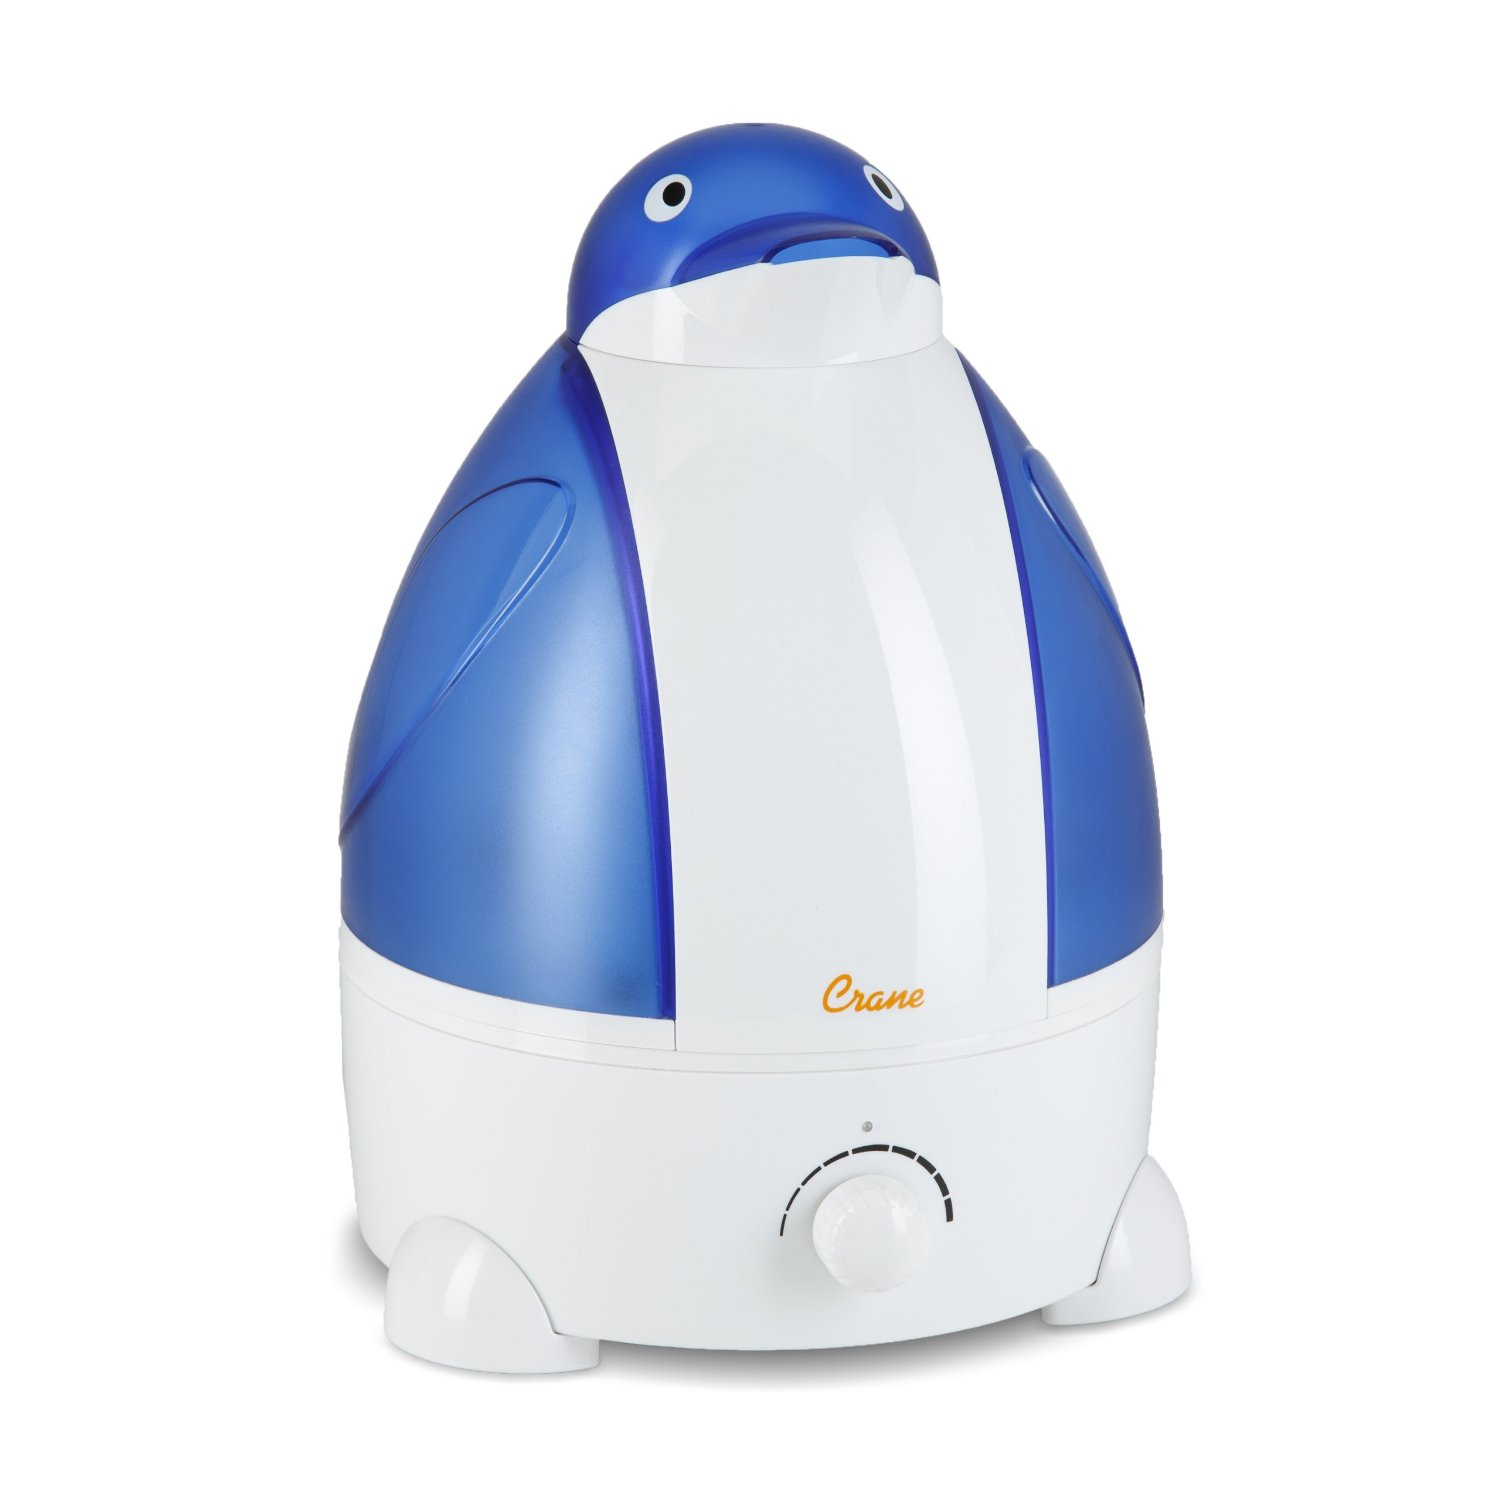 Small Humidifier For Bedroom Top 5 Best Cheap Humidifier And Reviews 2017 Airbetterorg